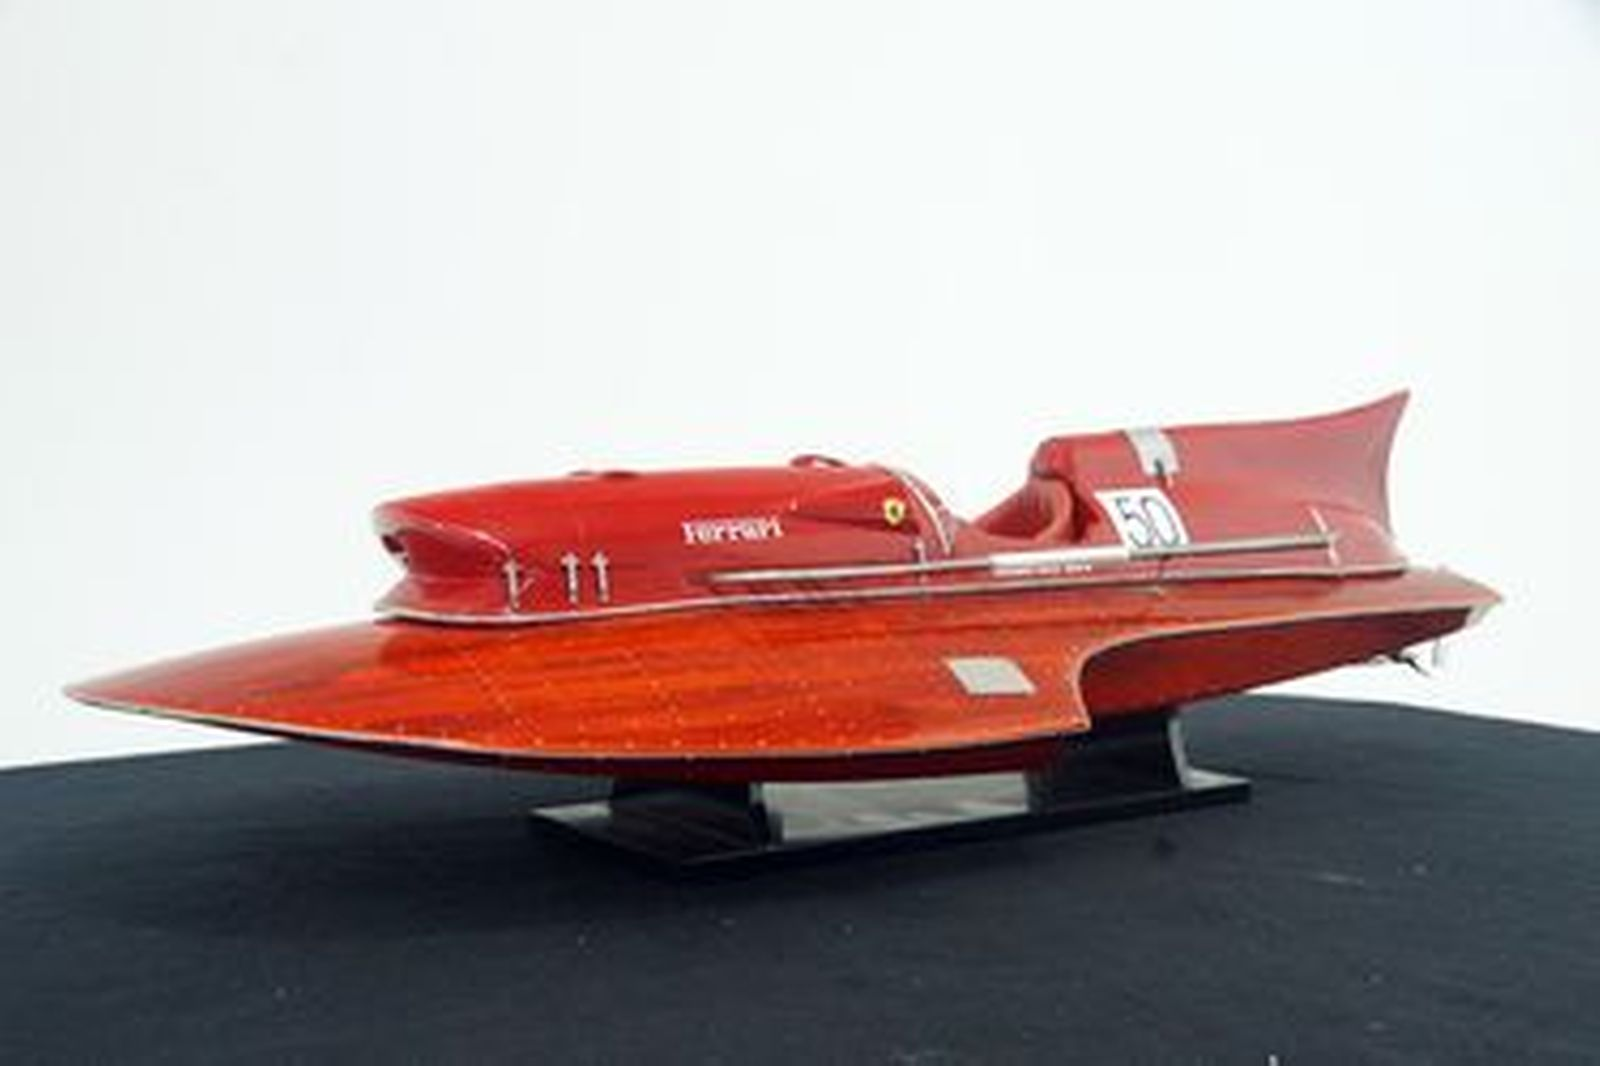 Model Boat - Ferrari Hydroplane (90cm long)